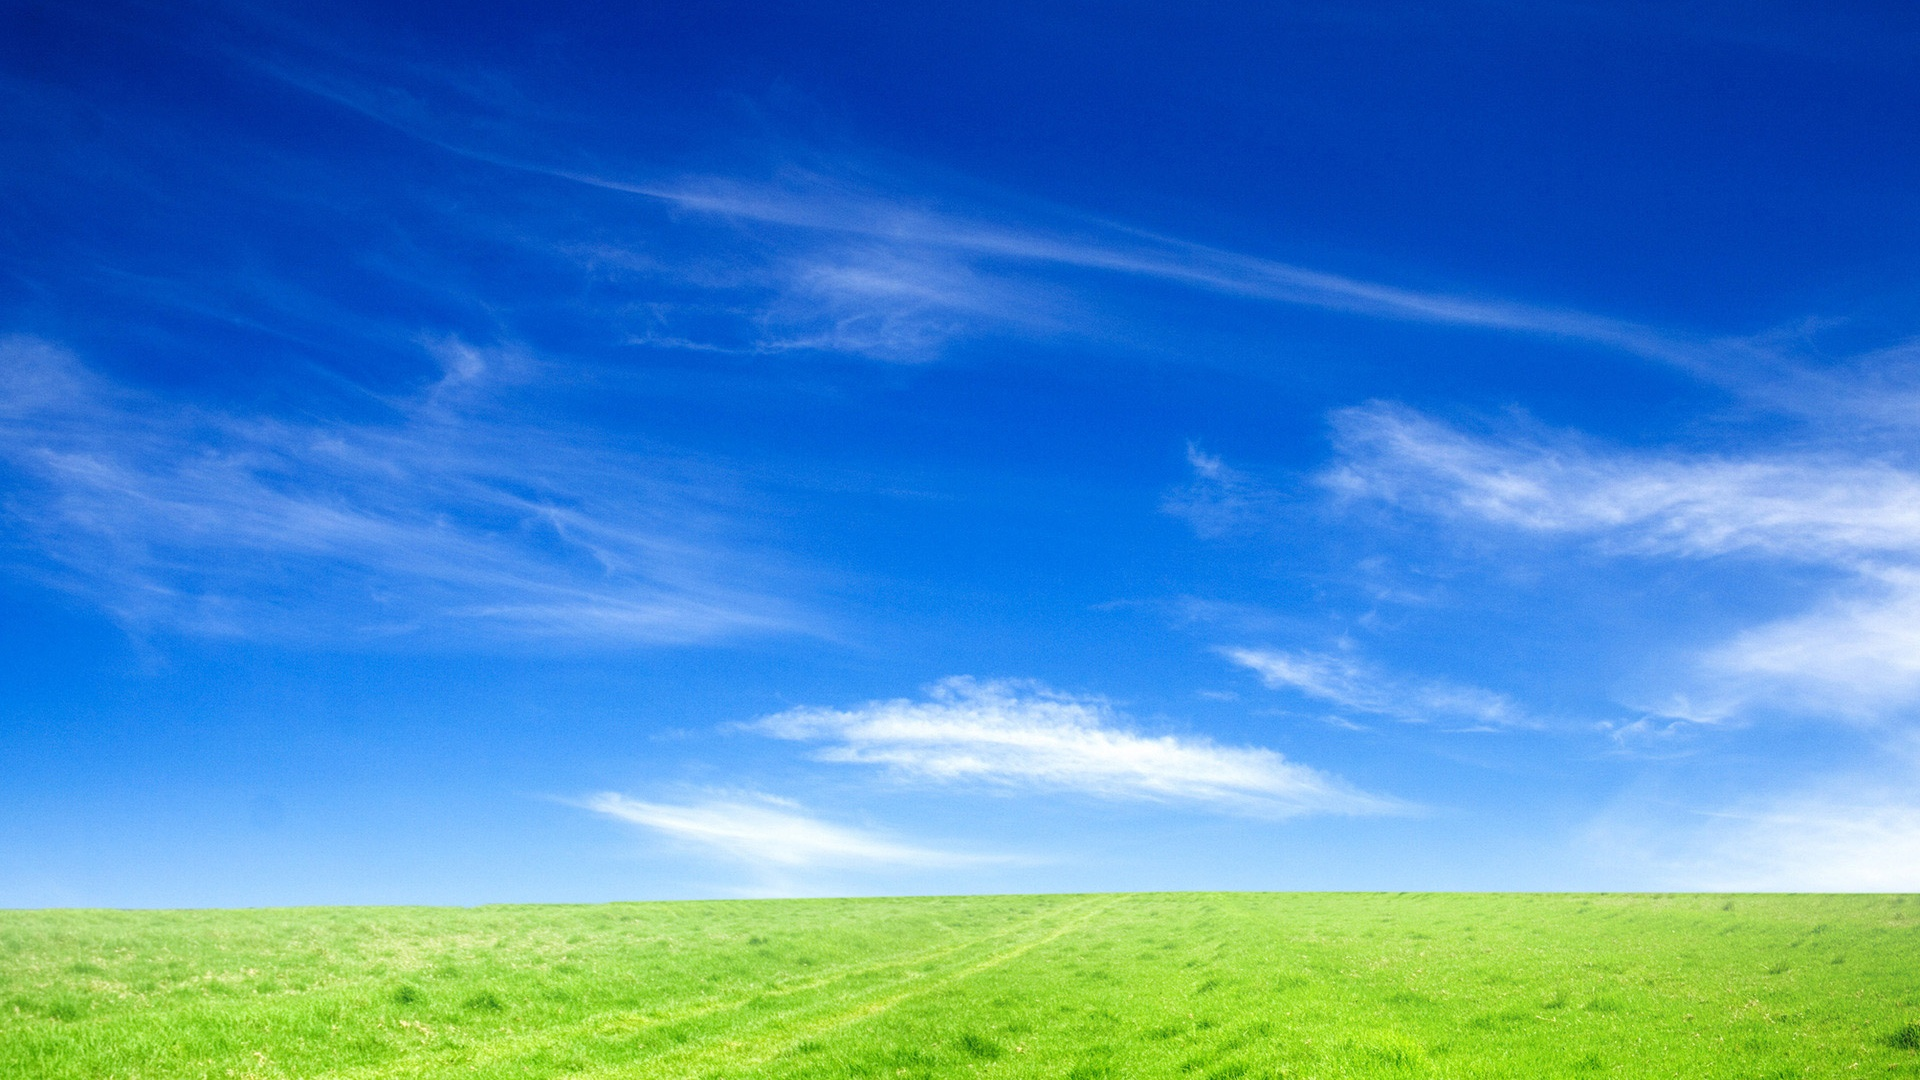 Blue Sky and Green Grass Wallpapers in jpg format for free download